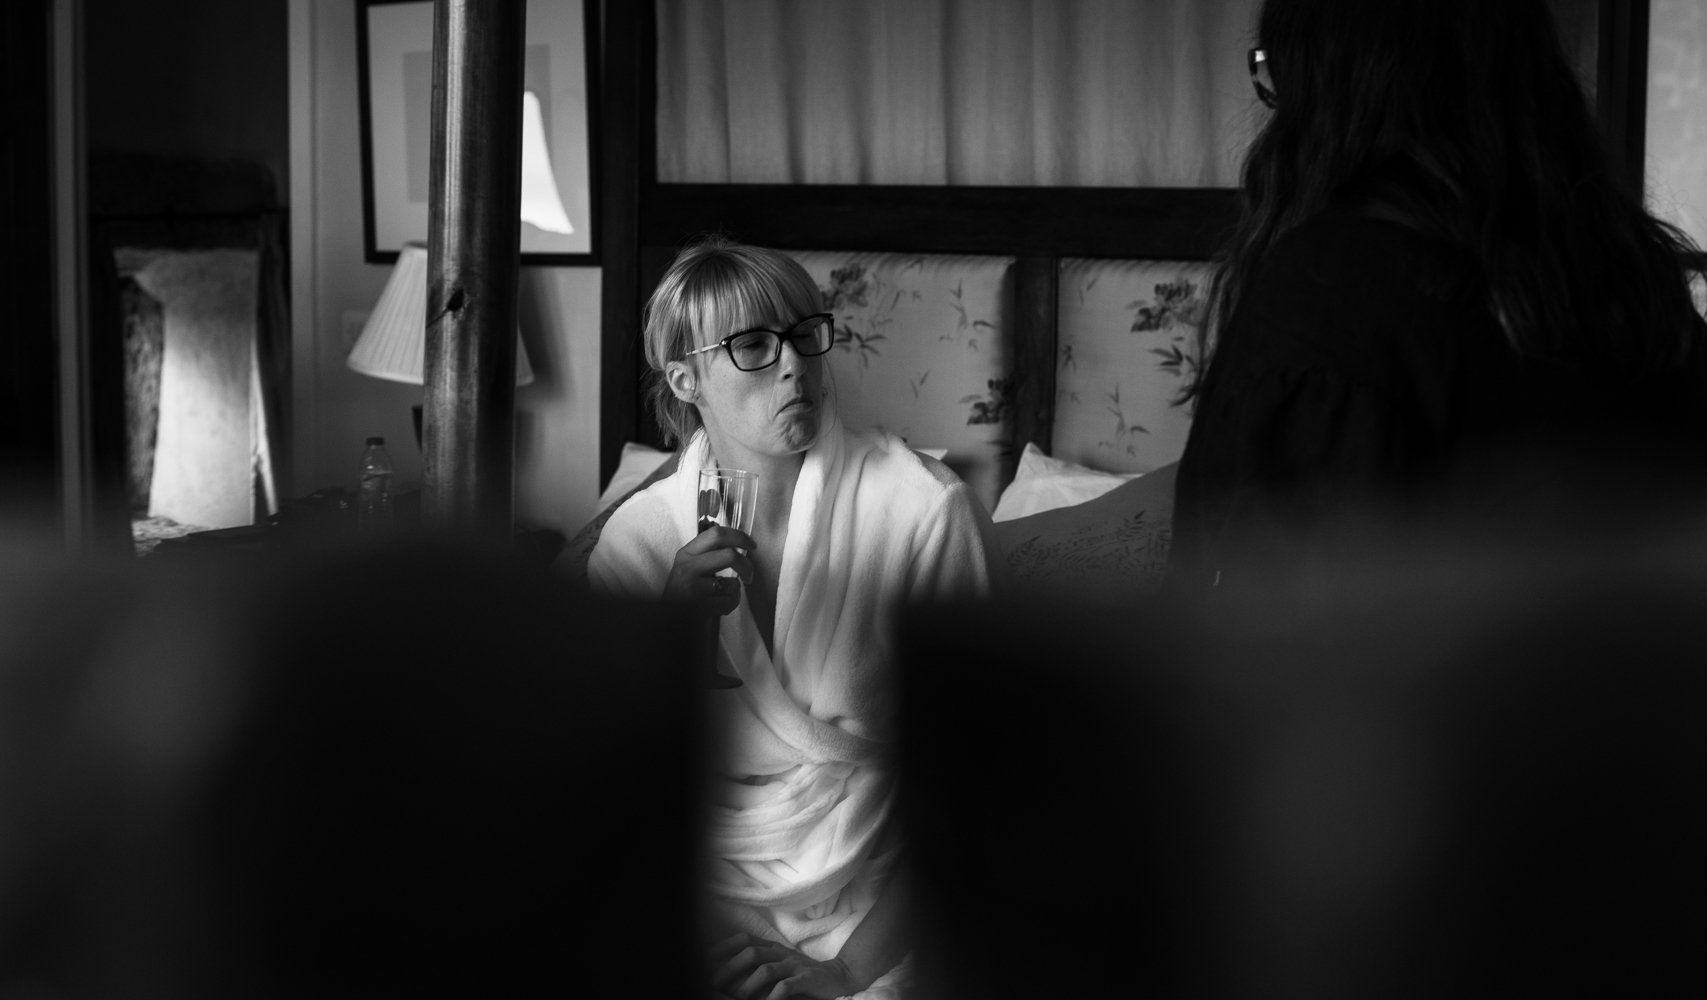 Black and white photo of a bridesmaid during bridal preparations